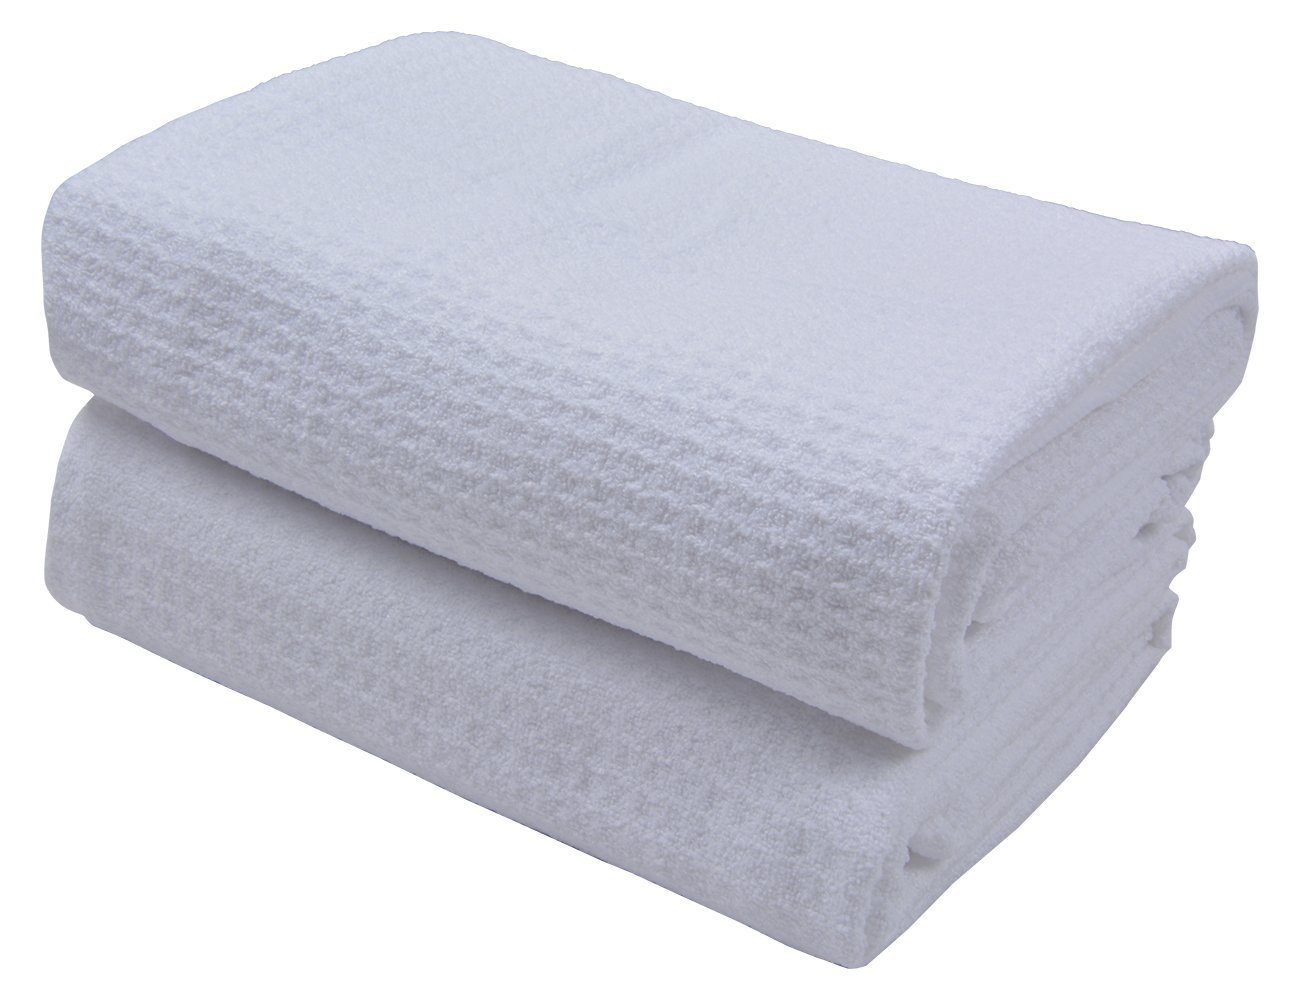 Sunland Microfiber Hair Drying Towel Waffle Weave Towel Extra Large Hand Towels 20Inchx40Inch 2 PACK White